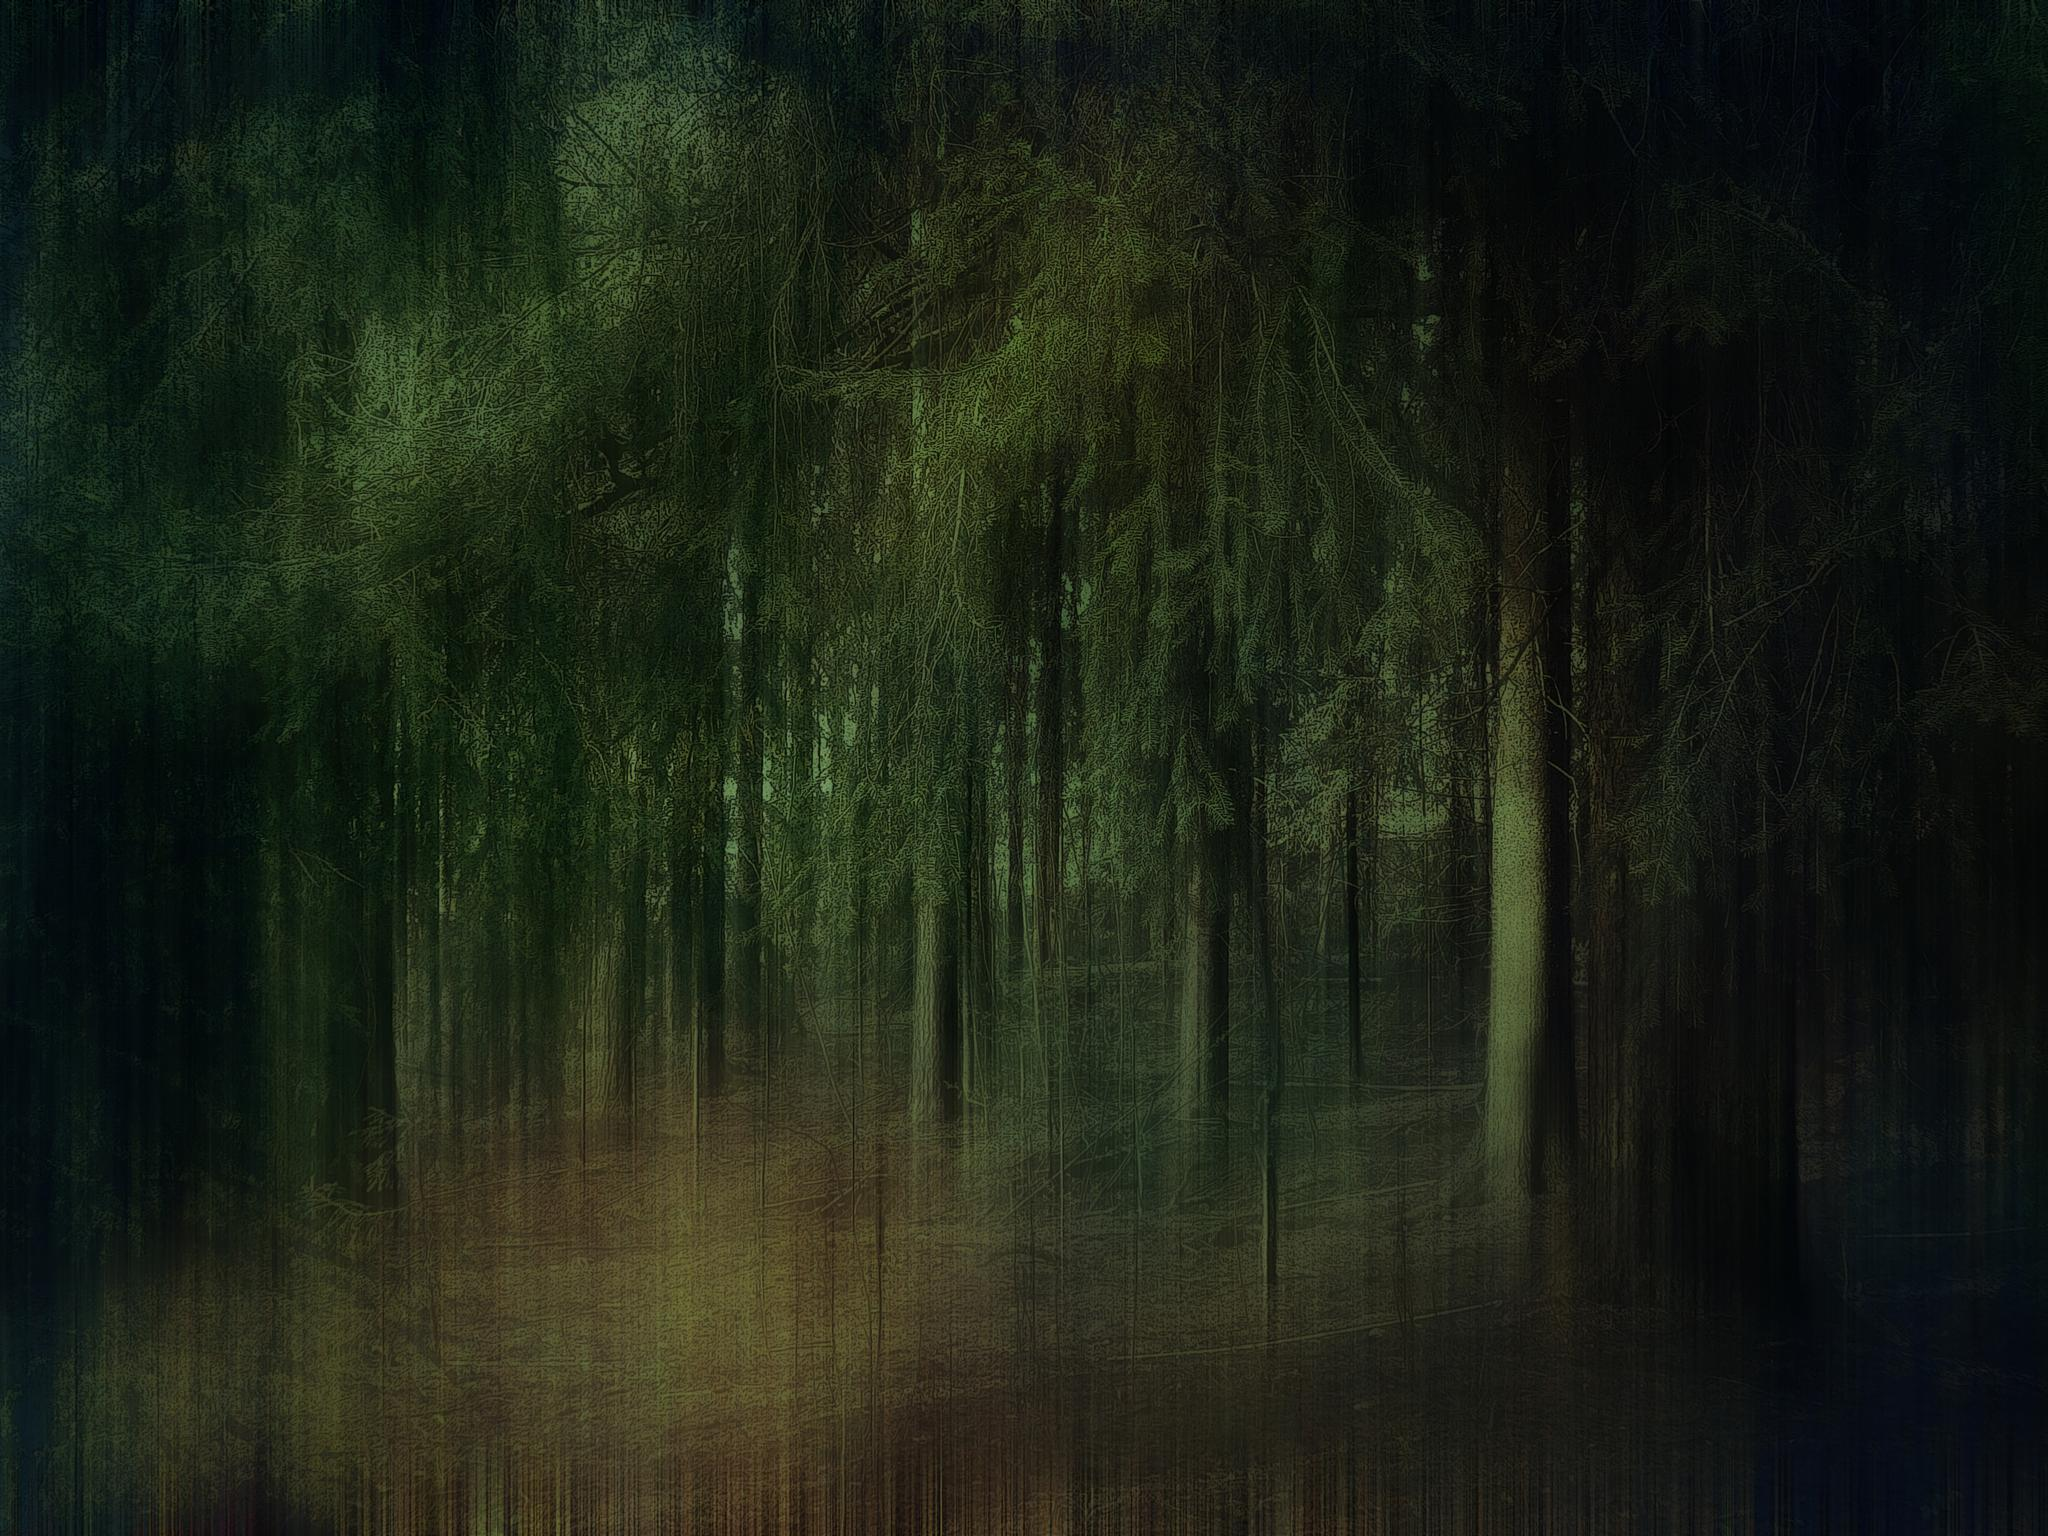 forest 13 by mcajan